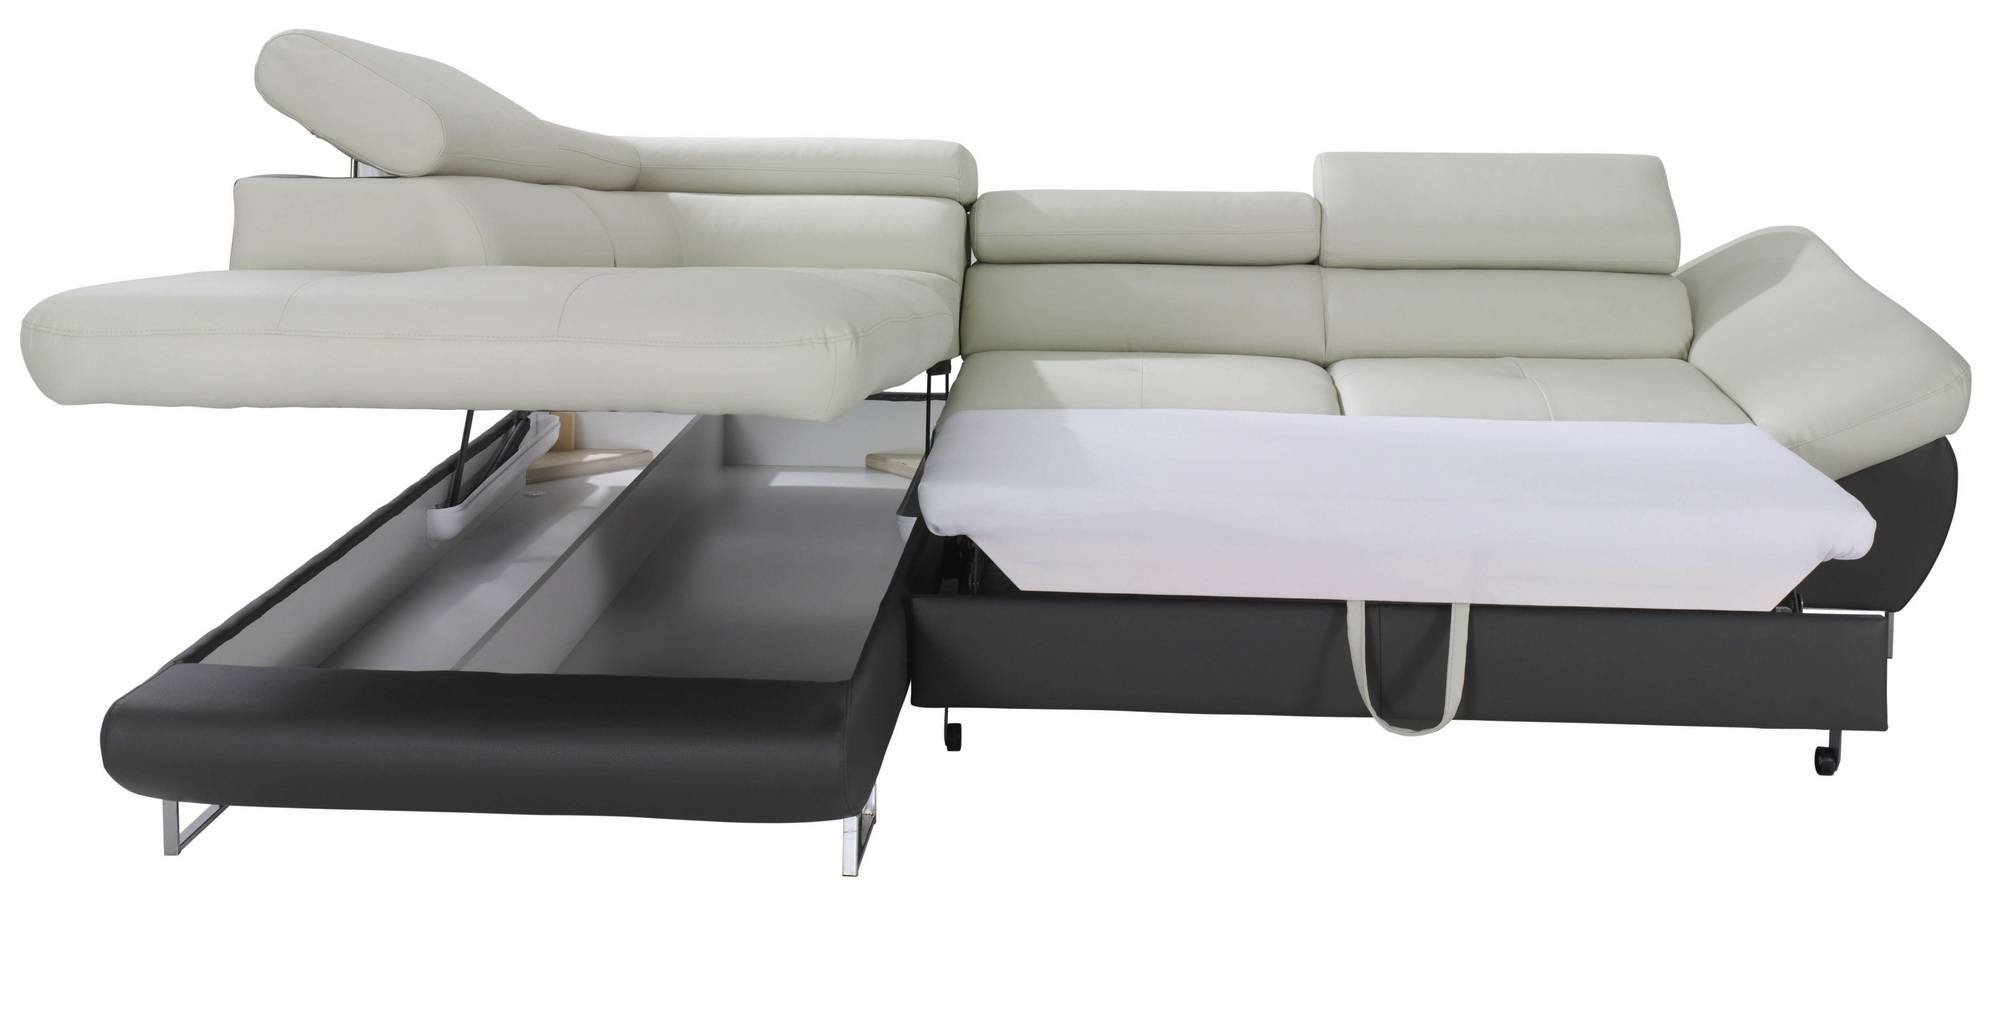 Fresh Natuzzi Leather Sofa Bed - Merciarescue | Tehranmix with regard to Leather Sofa Beds With Storage (Image 9 of 30)